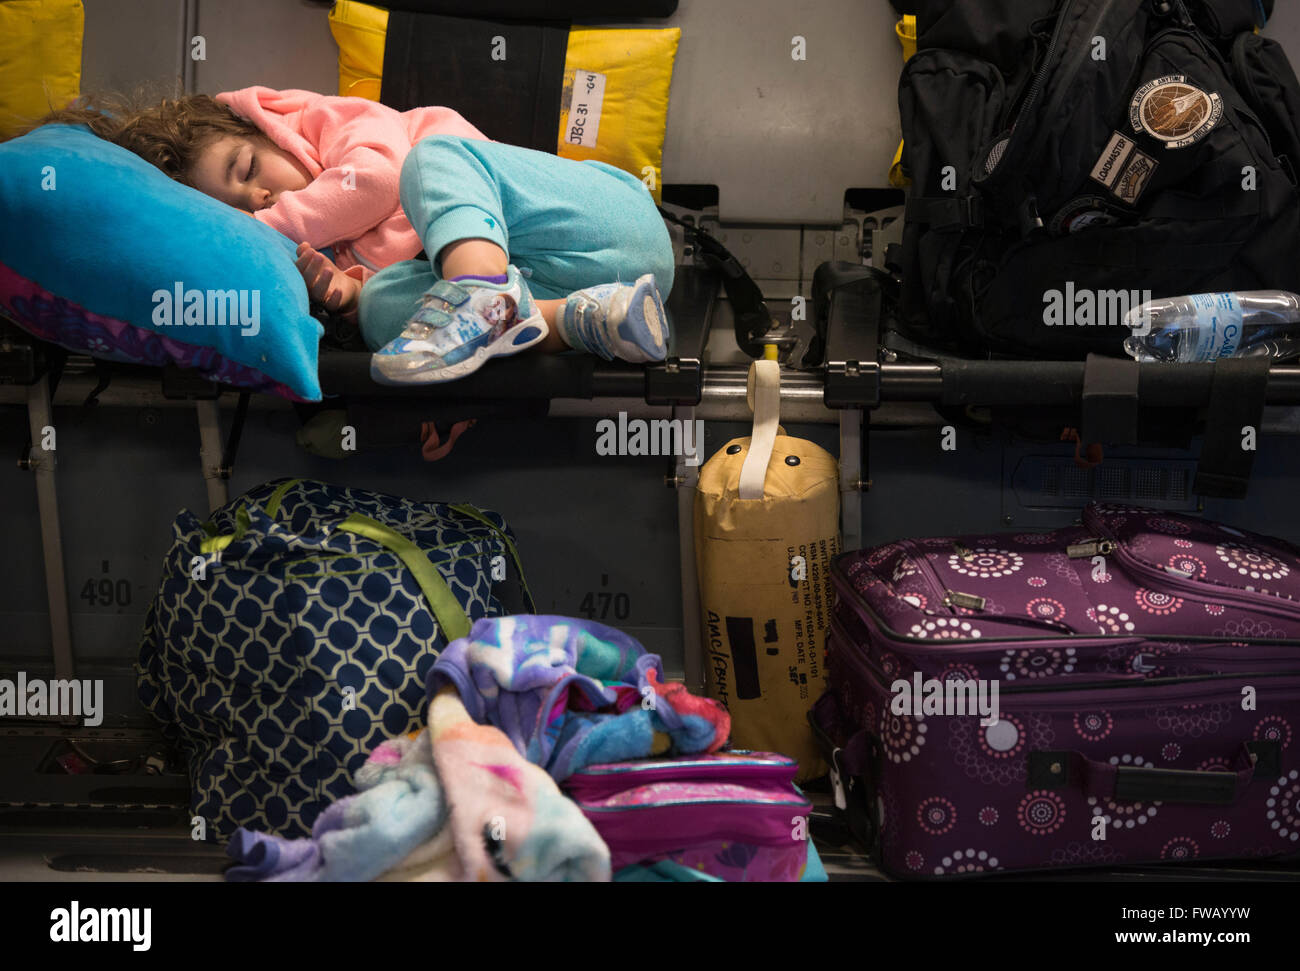 Amelia McNab, 2, sleeps aboard a C-17 Globemaster transport aircraft after being evacuated from Incirlik Air Base - Stock Image